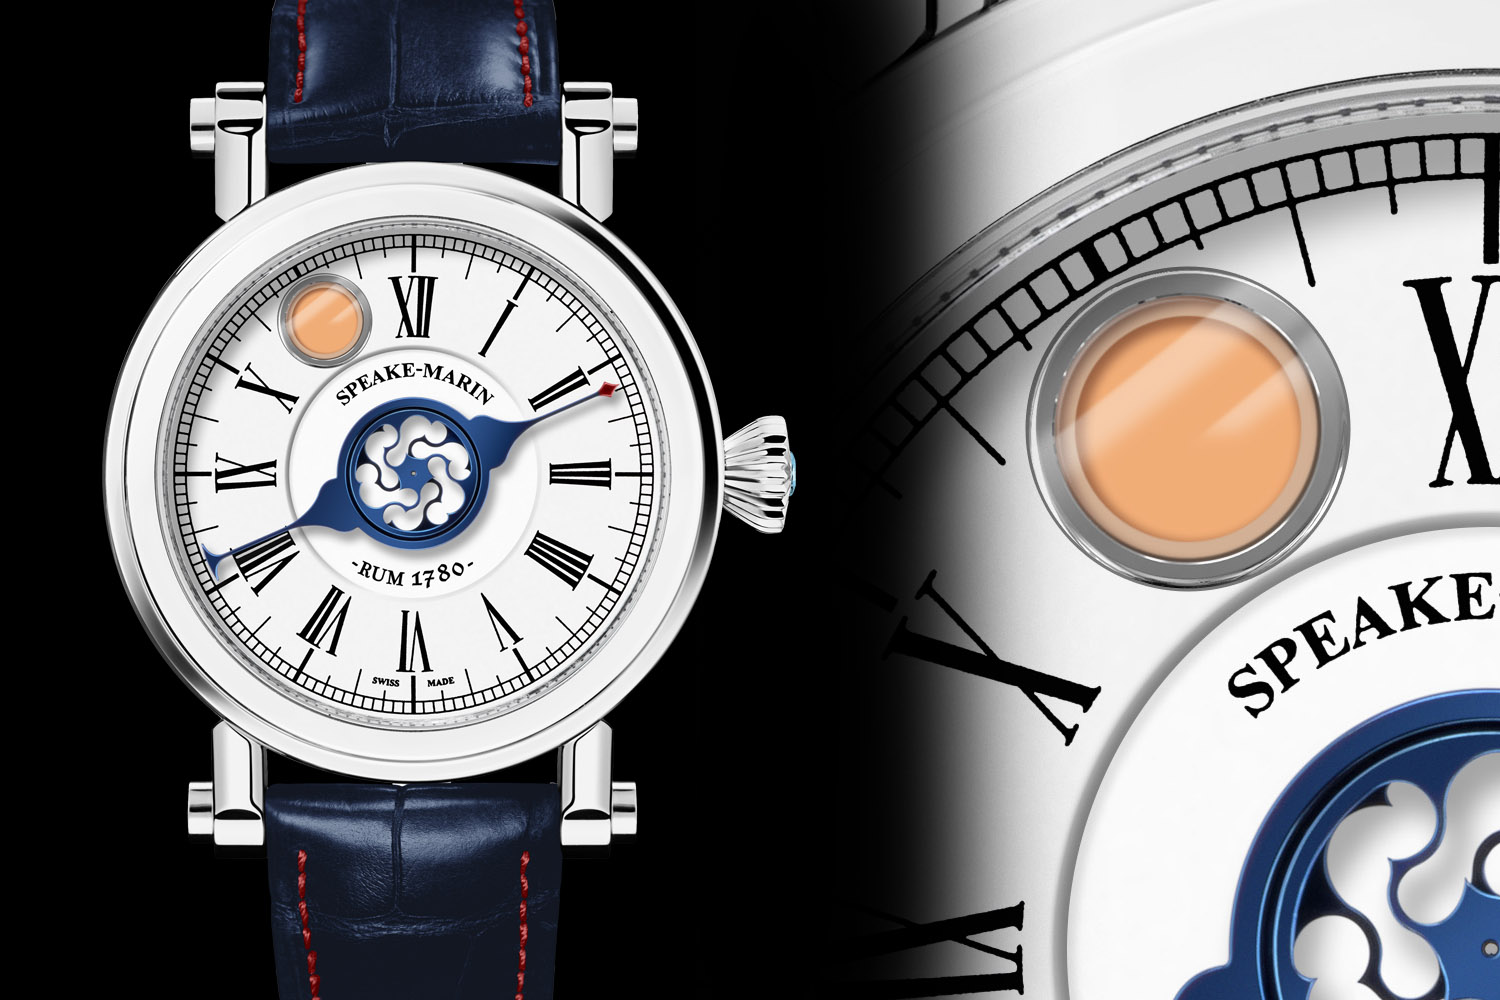 Speake Marin Velsheda Rum Watch